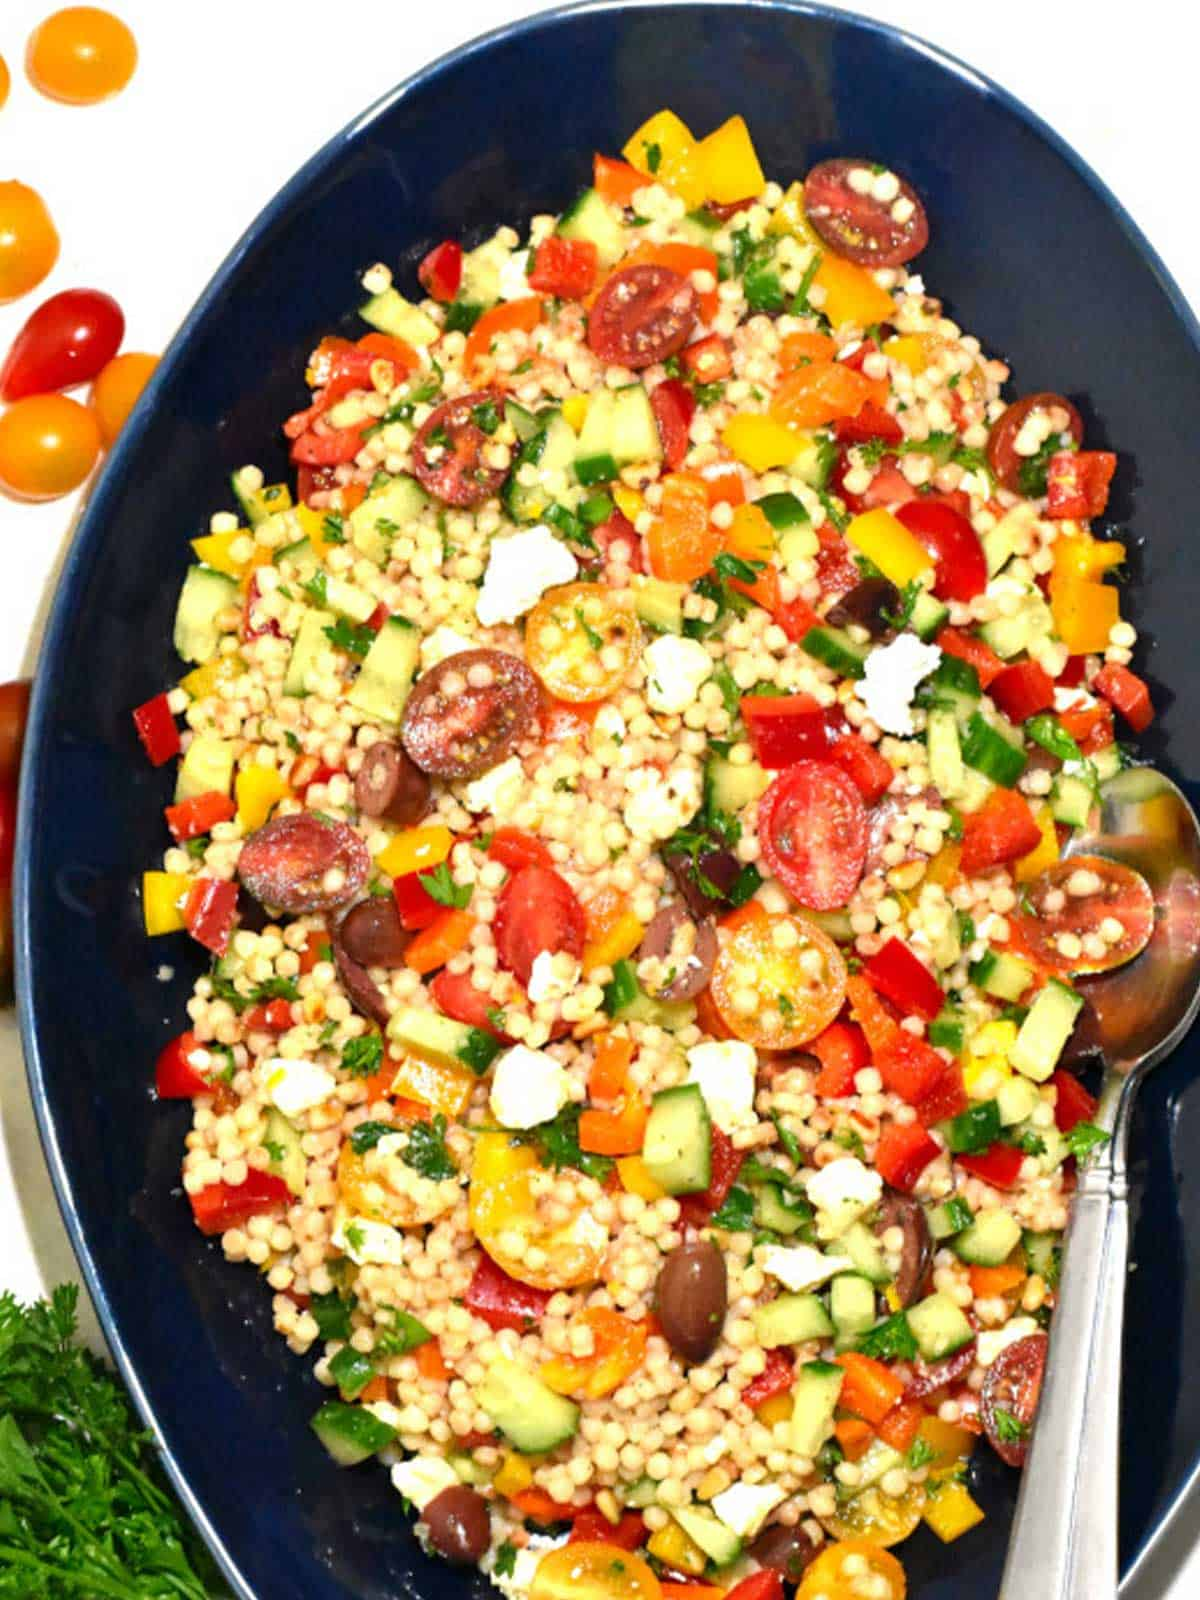 Overhead view of colorful couscous salad in an oval blue bowl surrounded by grape tomatoes.